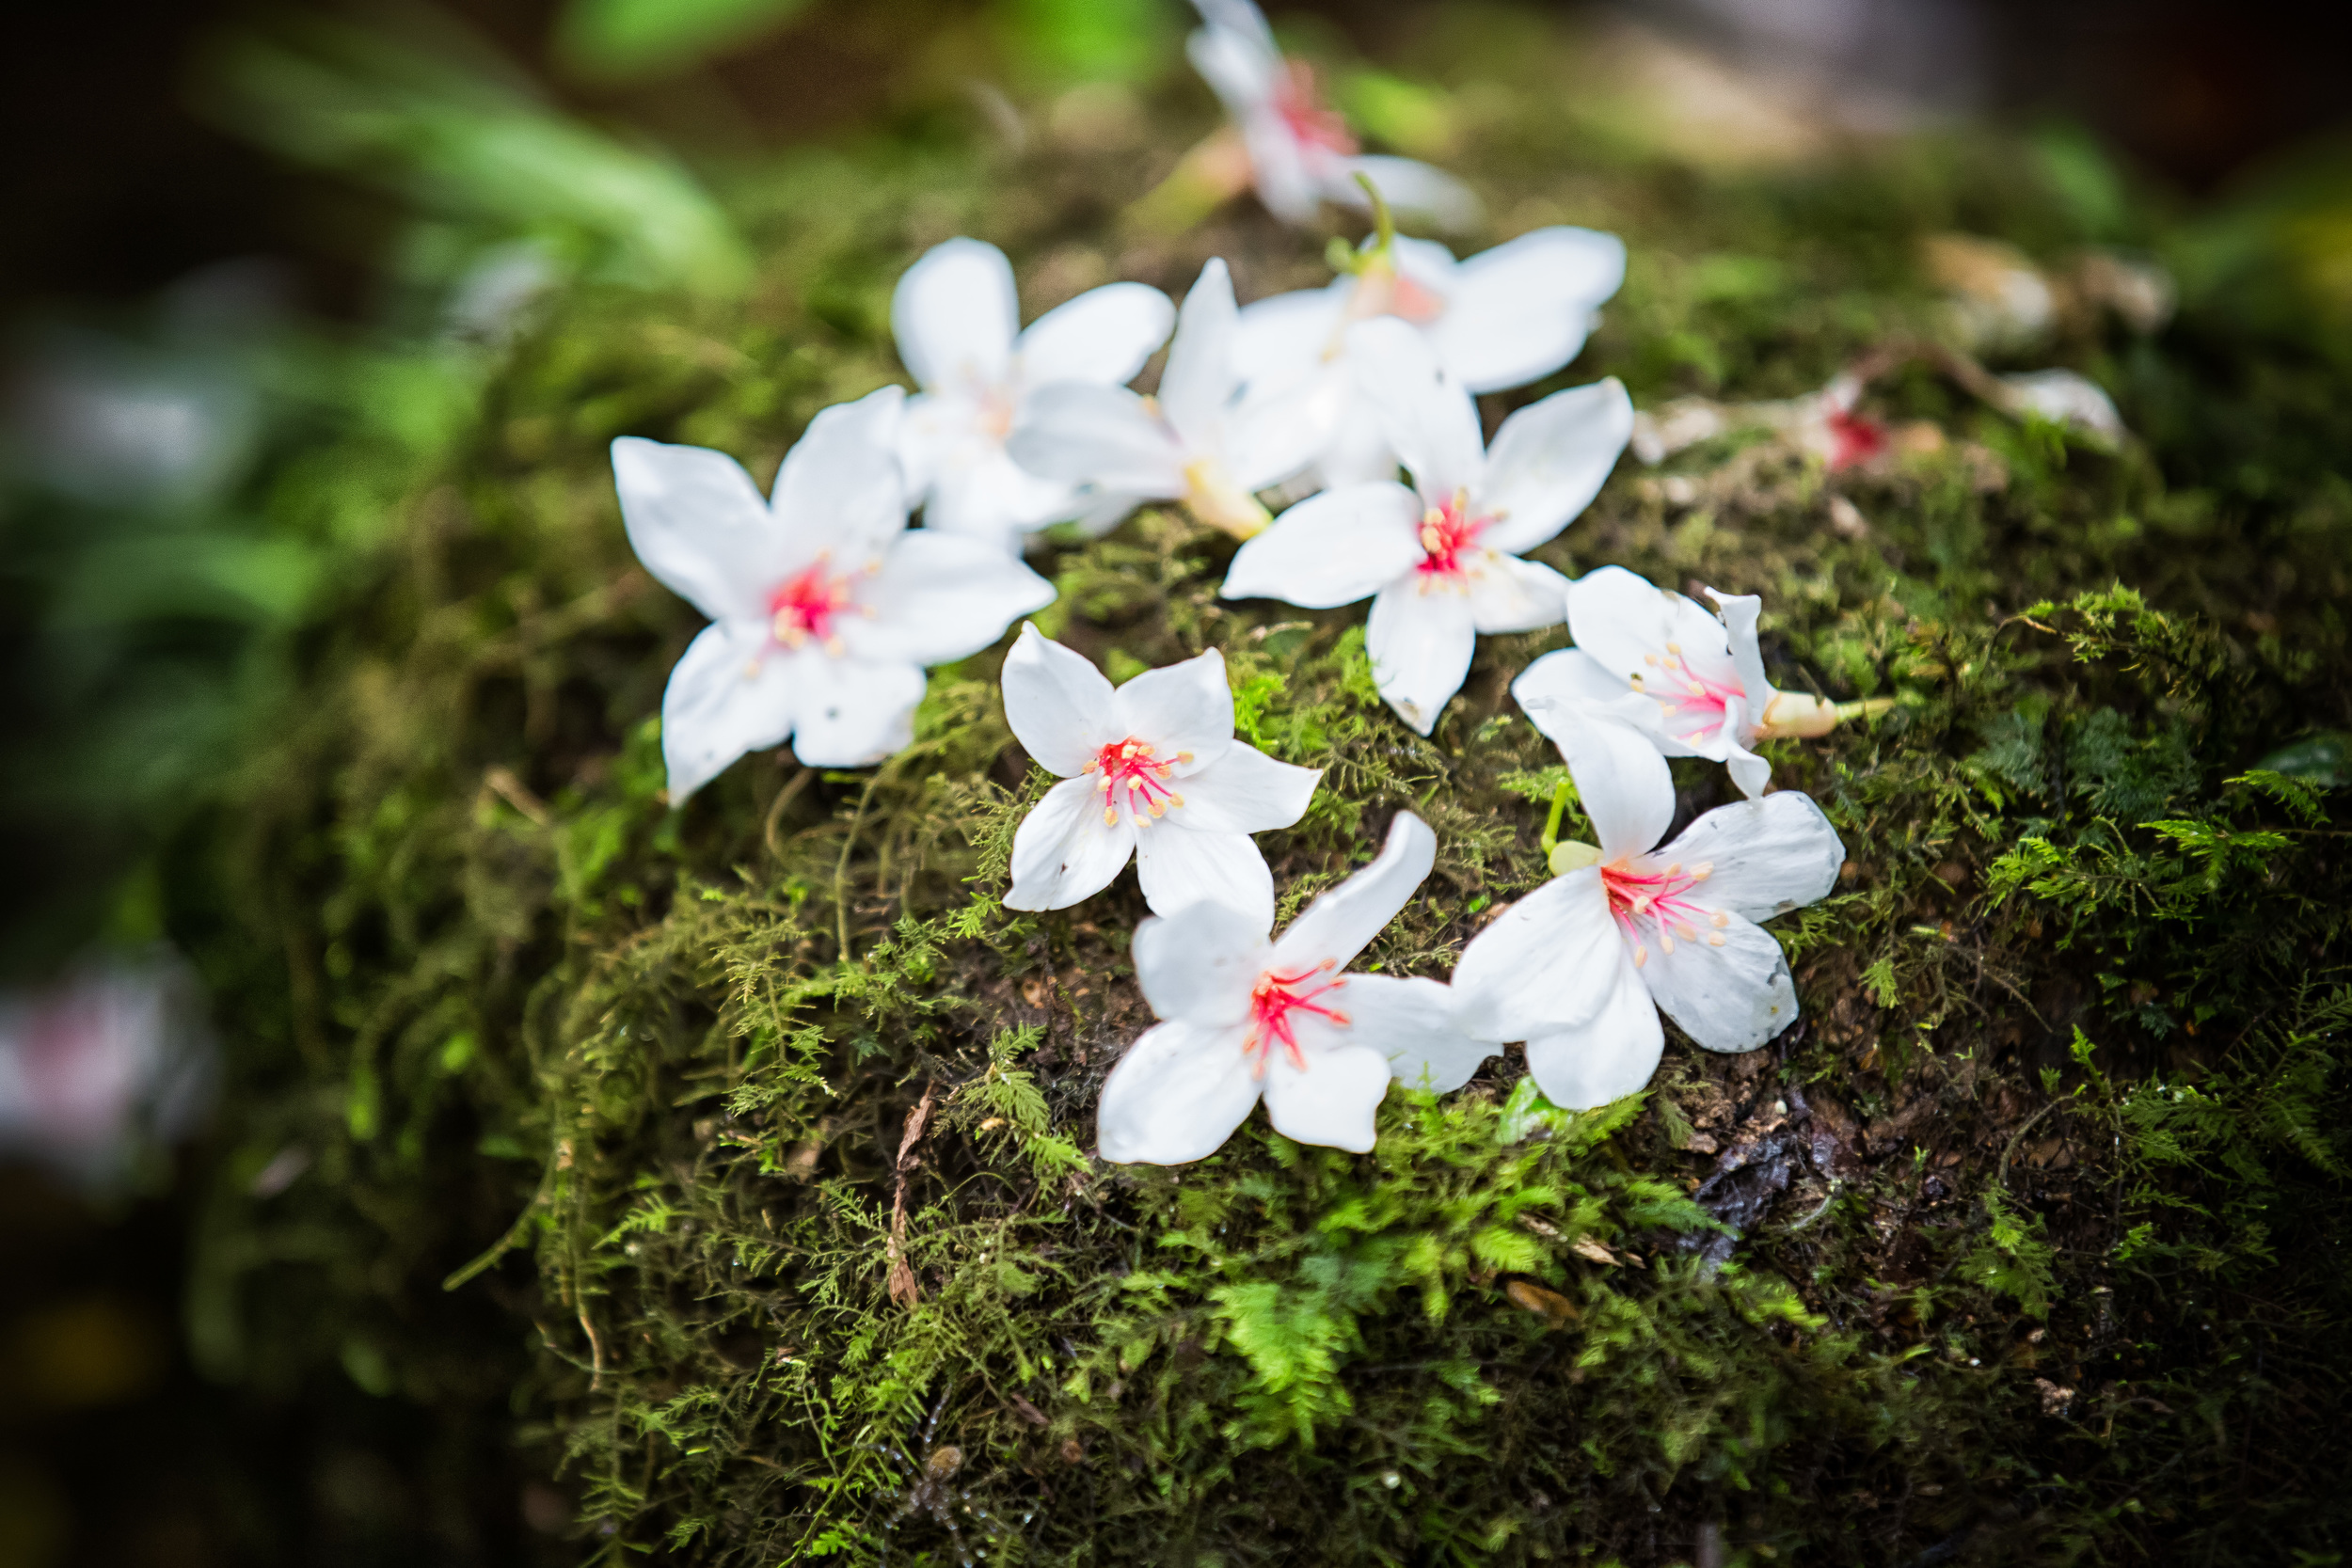 Blossoms that have landed on a moss-covered stone.